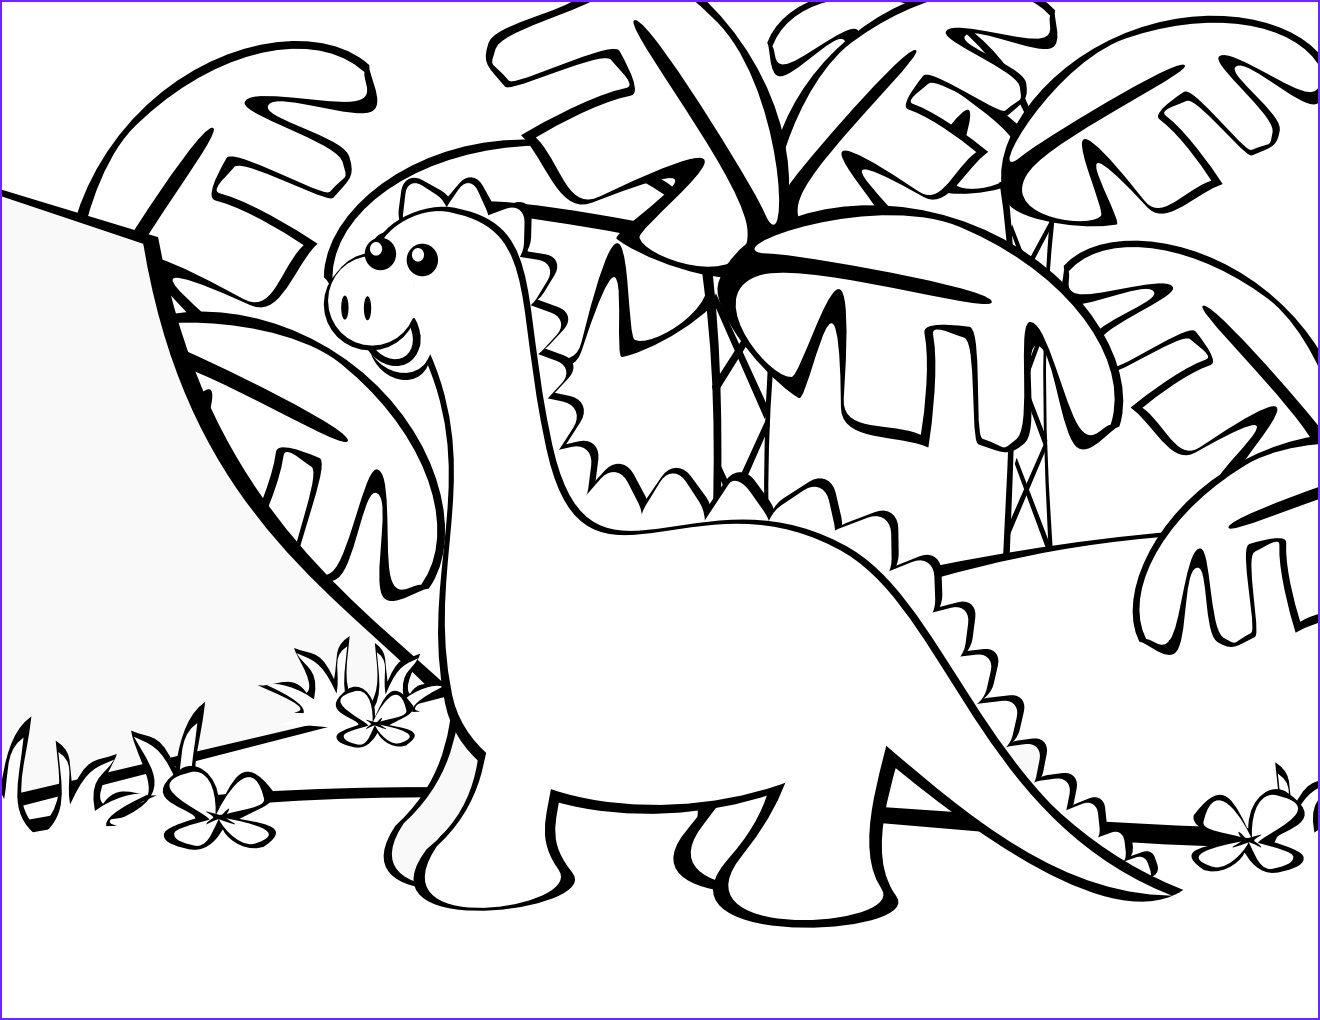 Dinosaur Coloring Pages Beautiful Photography Free Coloring Pages Dinosaur Coloring Pages